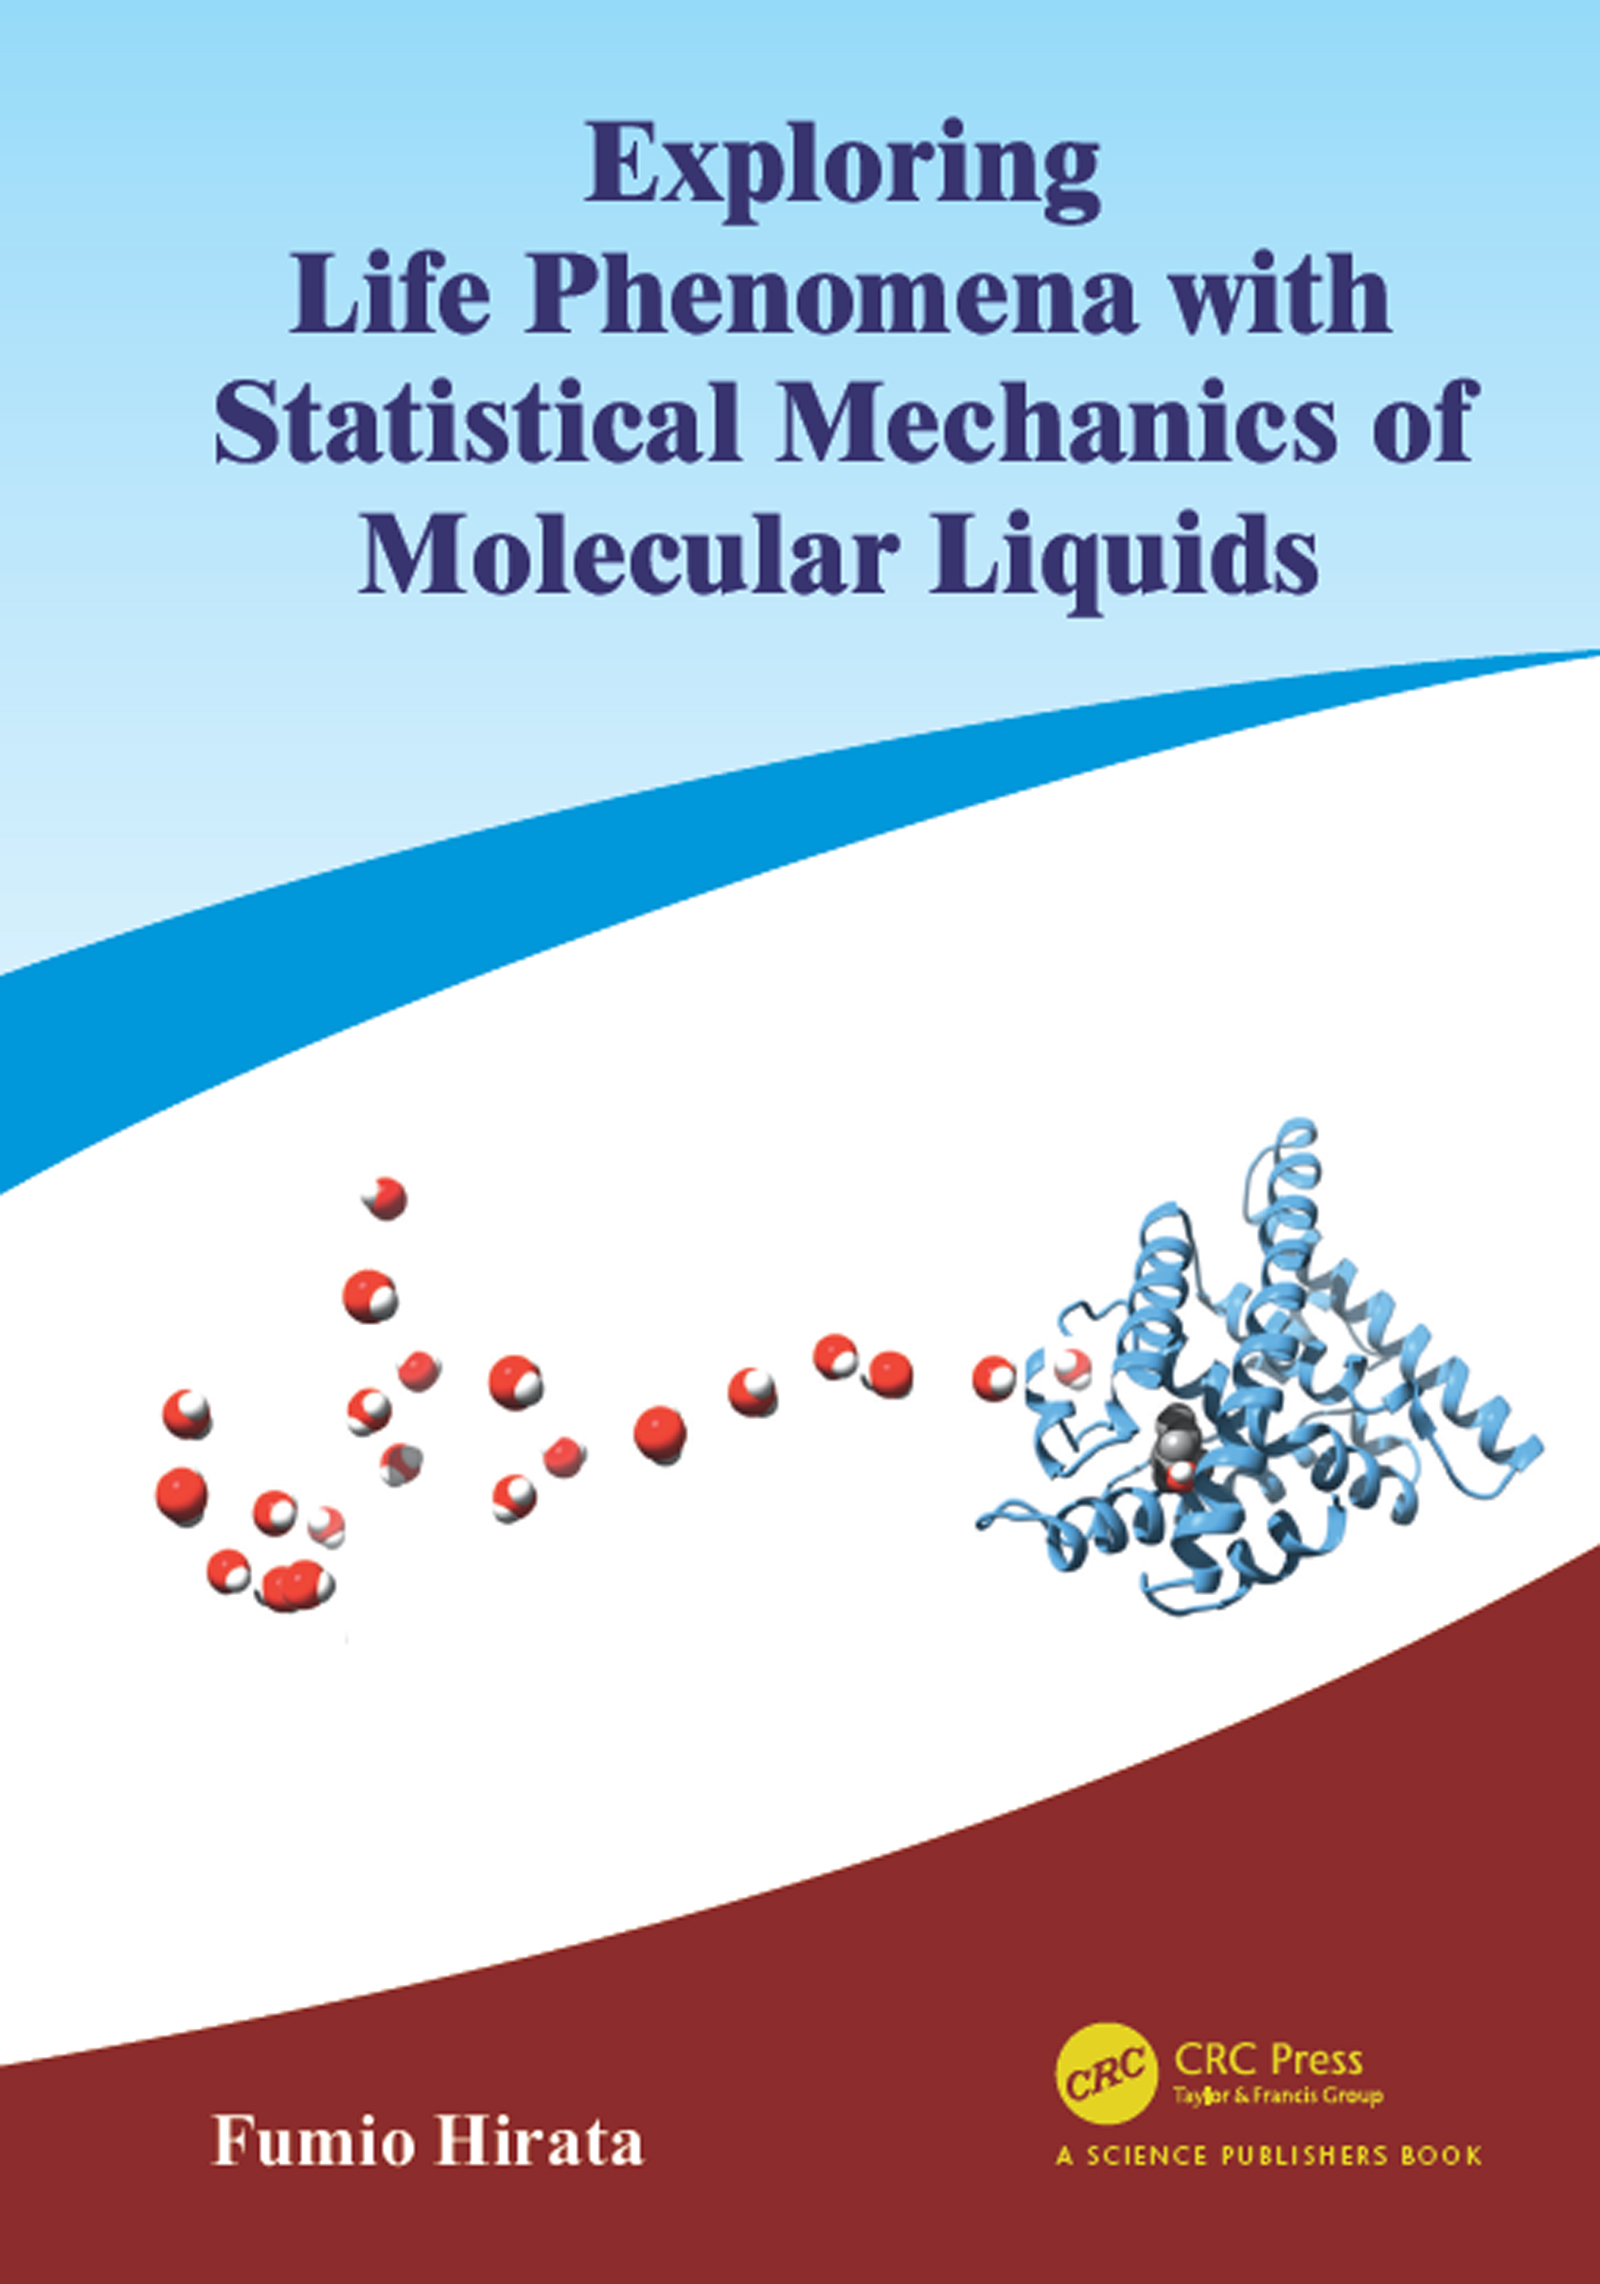 Exploring Life Phenomena with Statistical Mechanics of Molecular Liquids: 1st Edition (Hardback) book cover